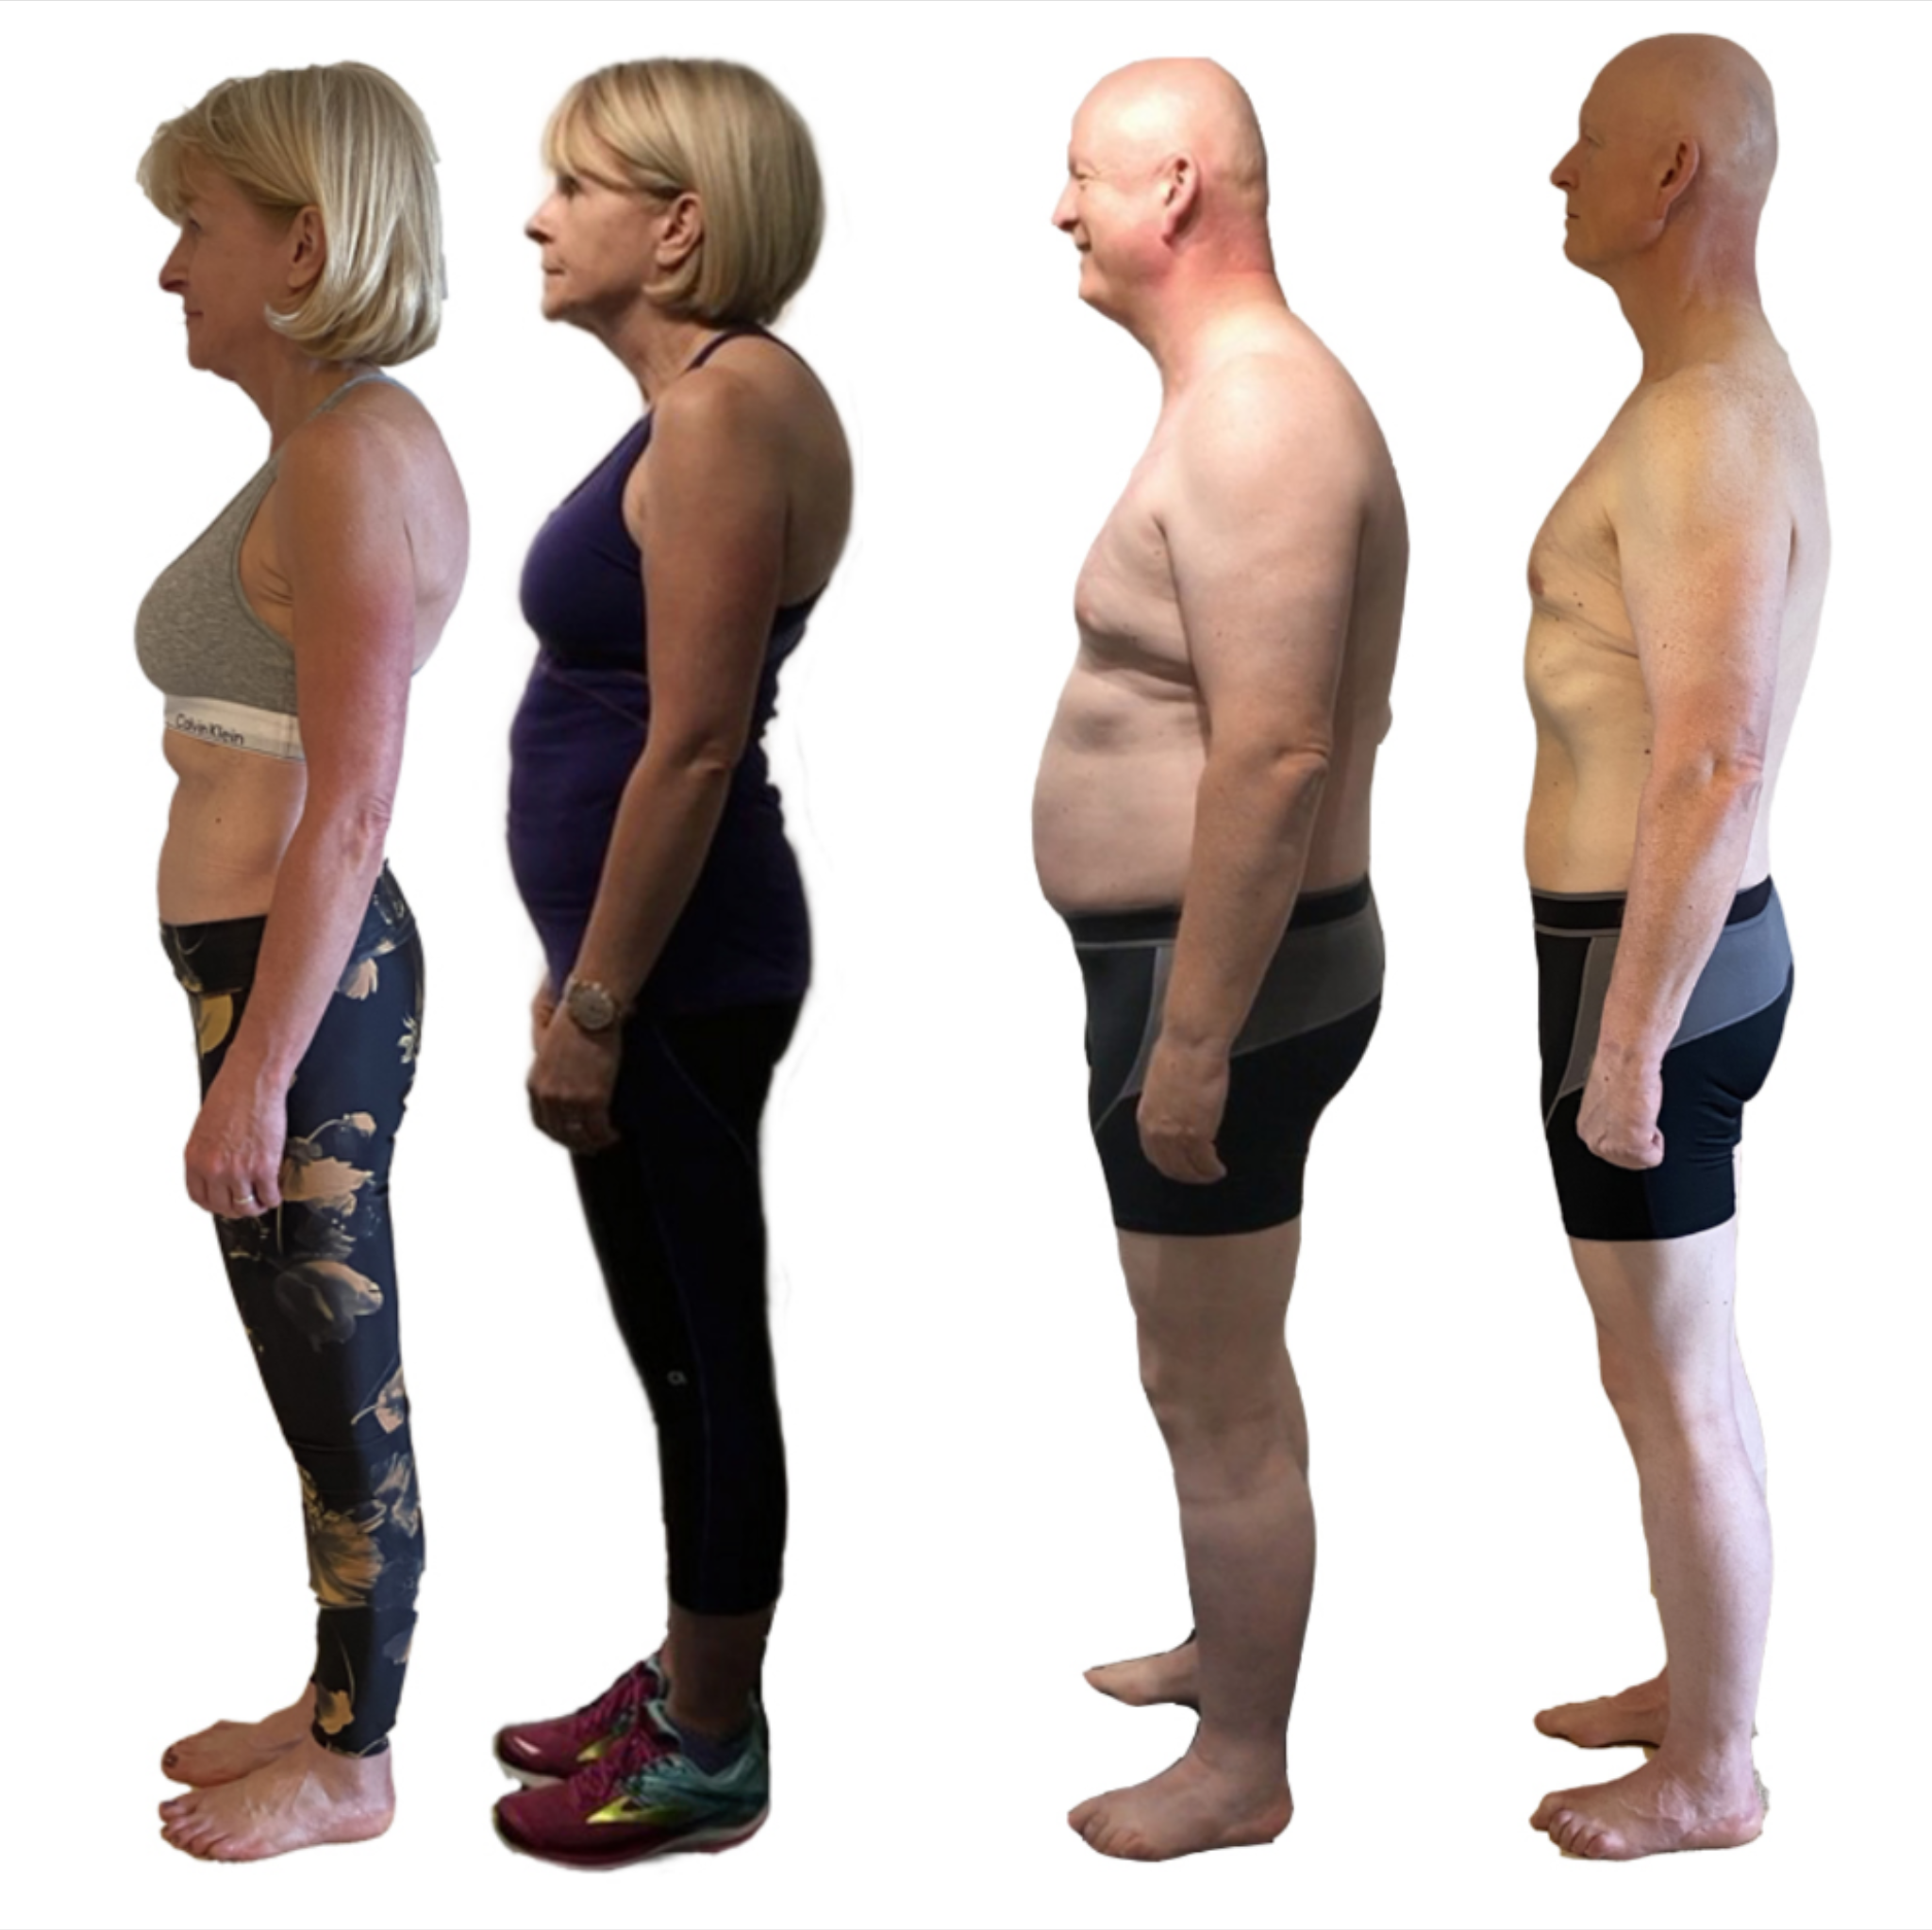 Image showing Duncan and Tracy's transformation